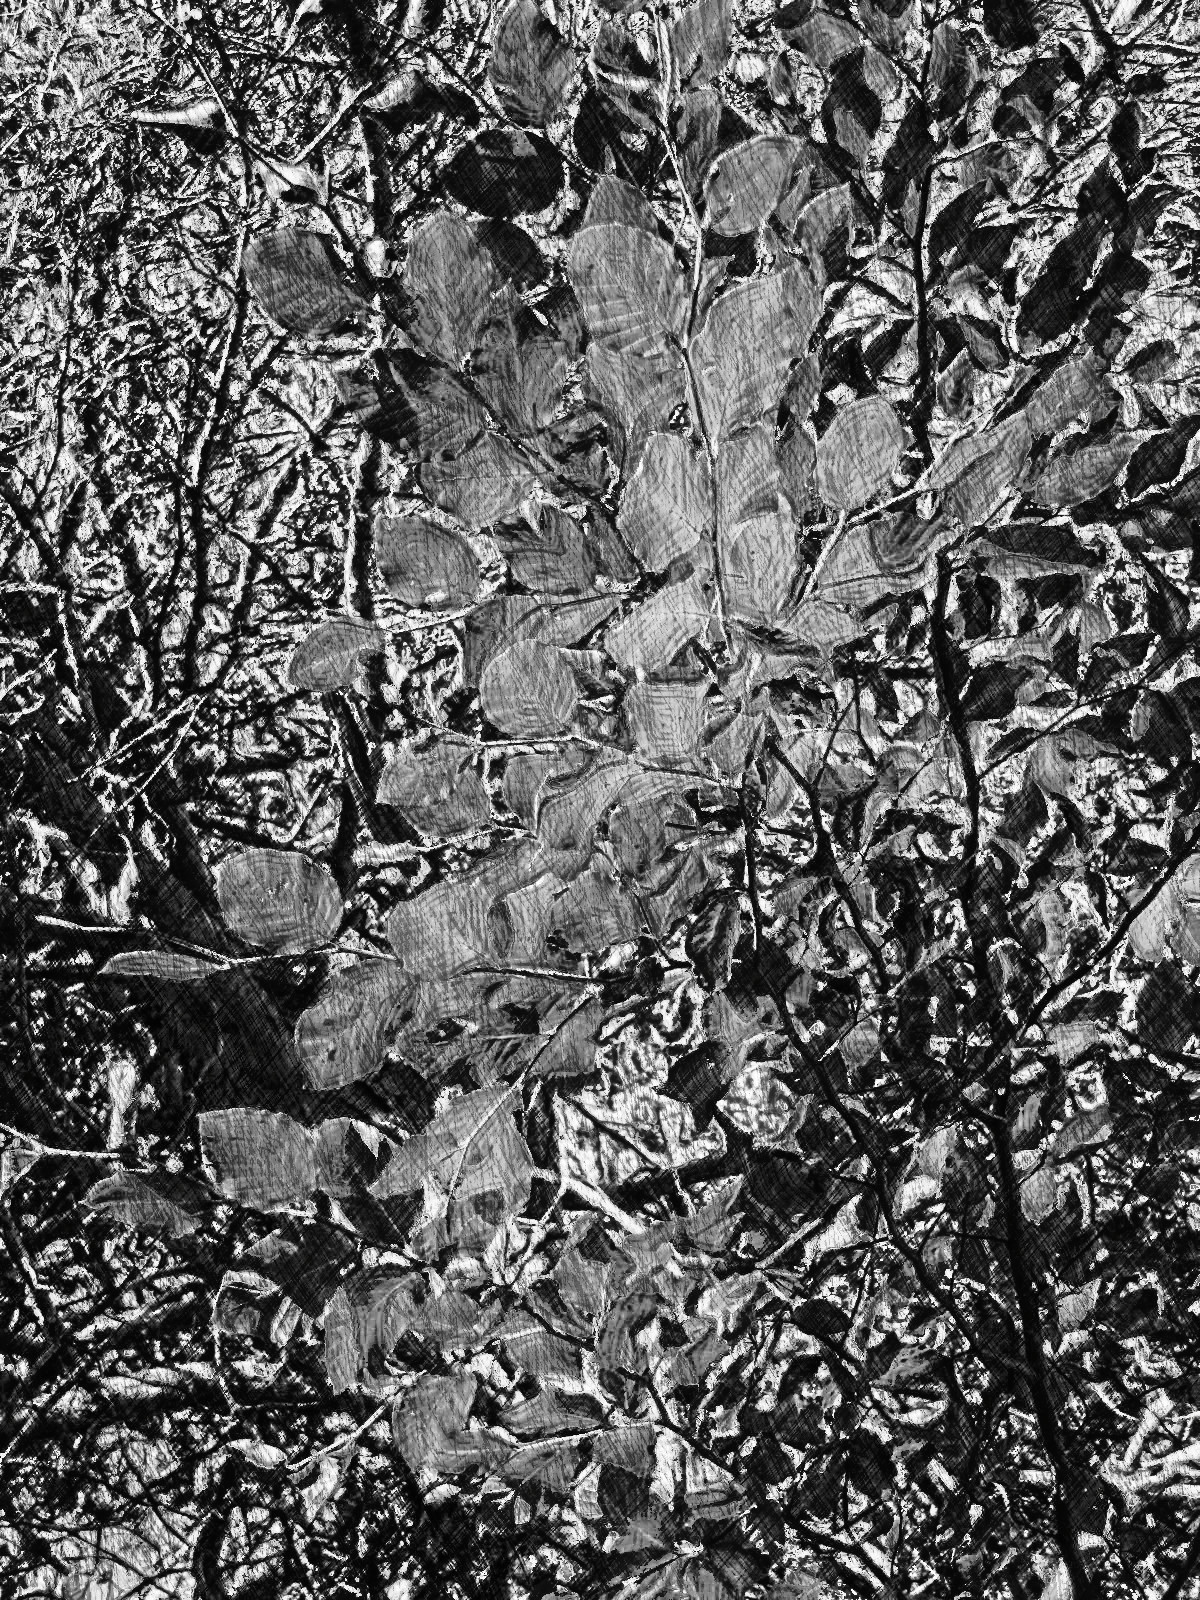 AutumnLeaves-none-intensity7-grayscale.jpg